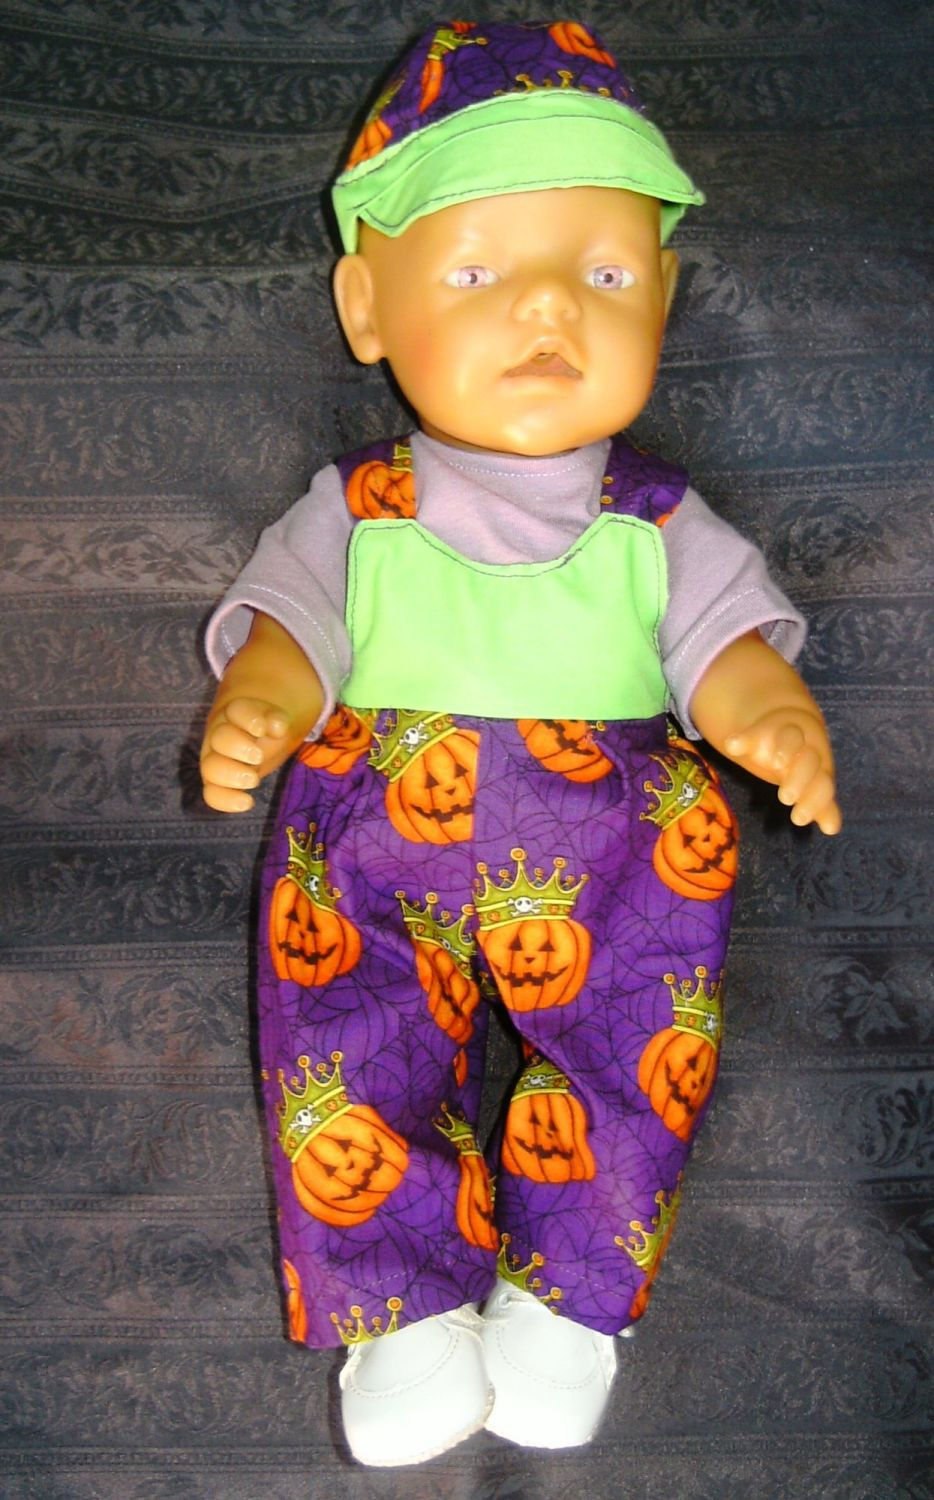 Doll's Halloween dungarees to fit Baby Born Boy doll